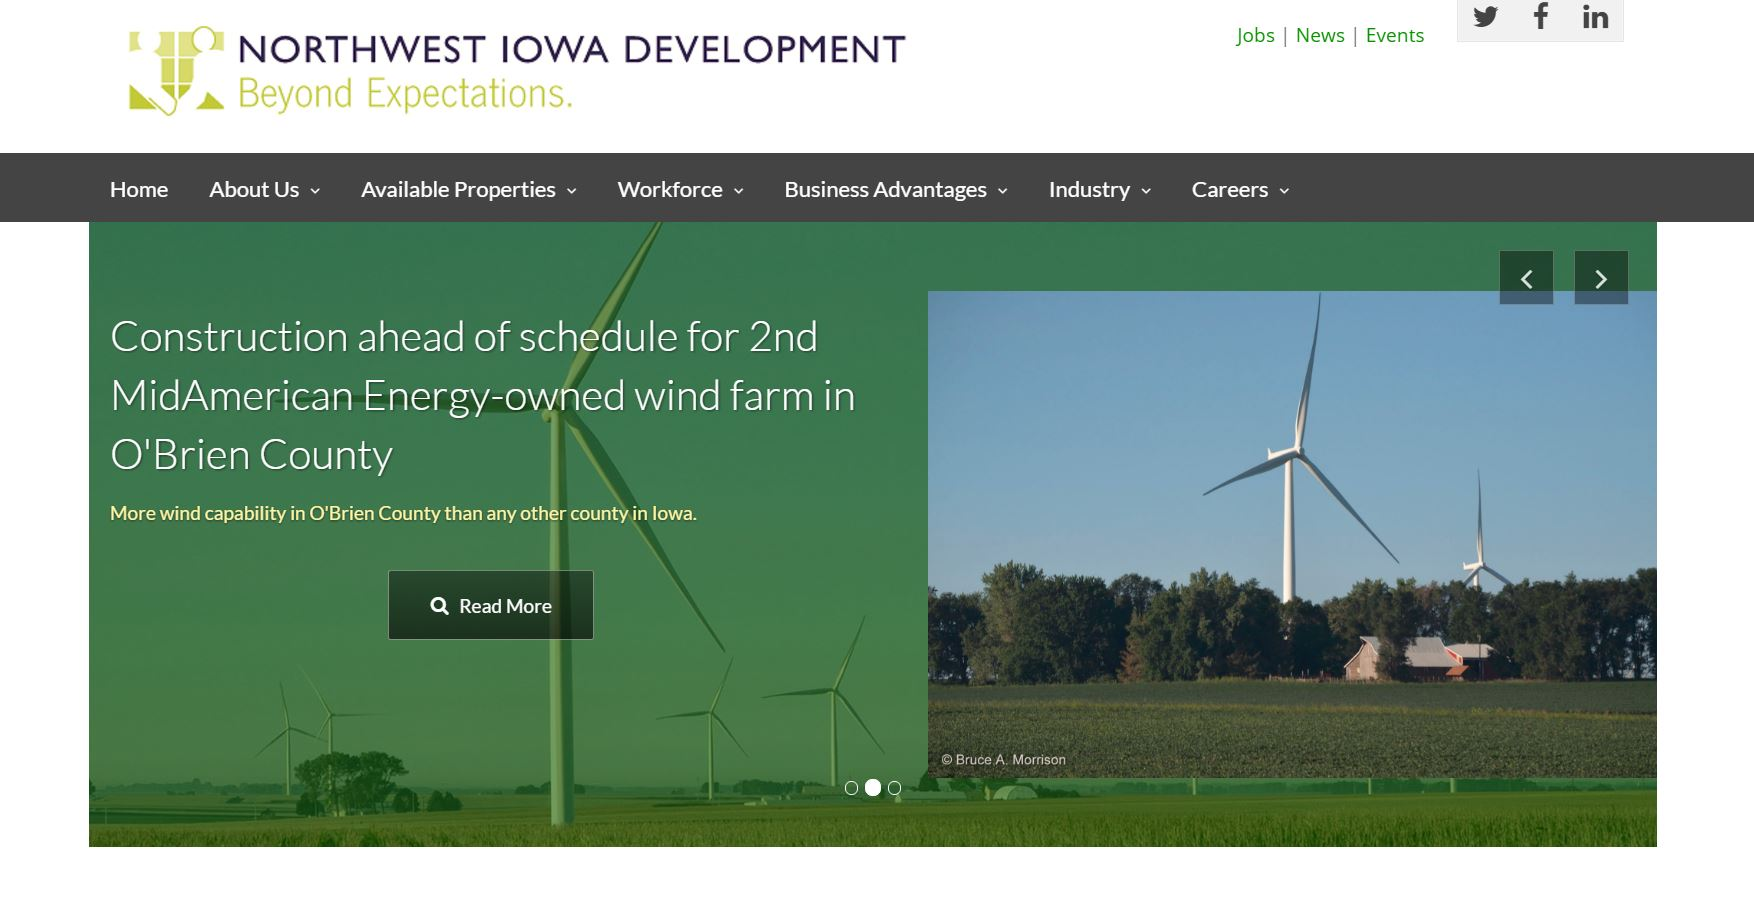 Northwest Iowa Development